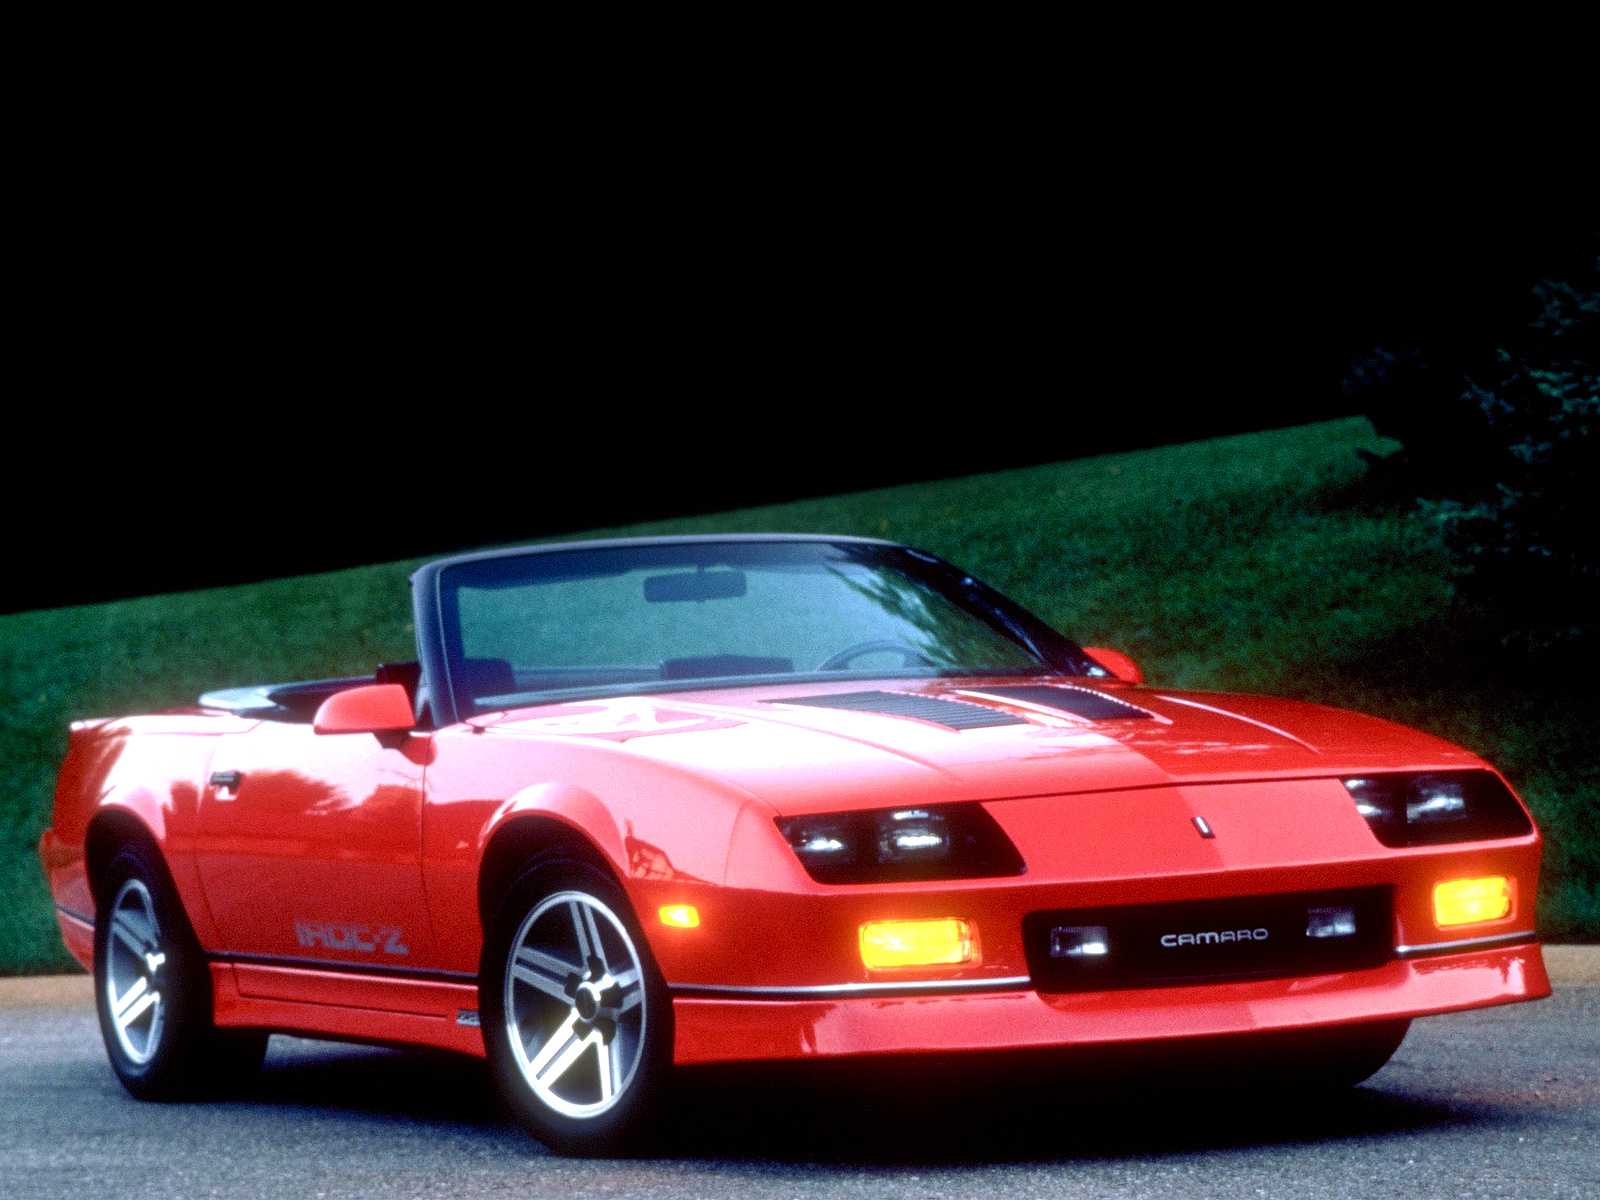 Chevrolet Camaro IROC Z Wallpapers High Quality Download 1600x1200